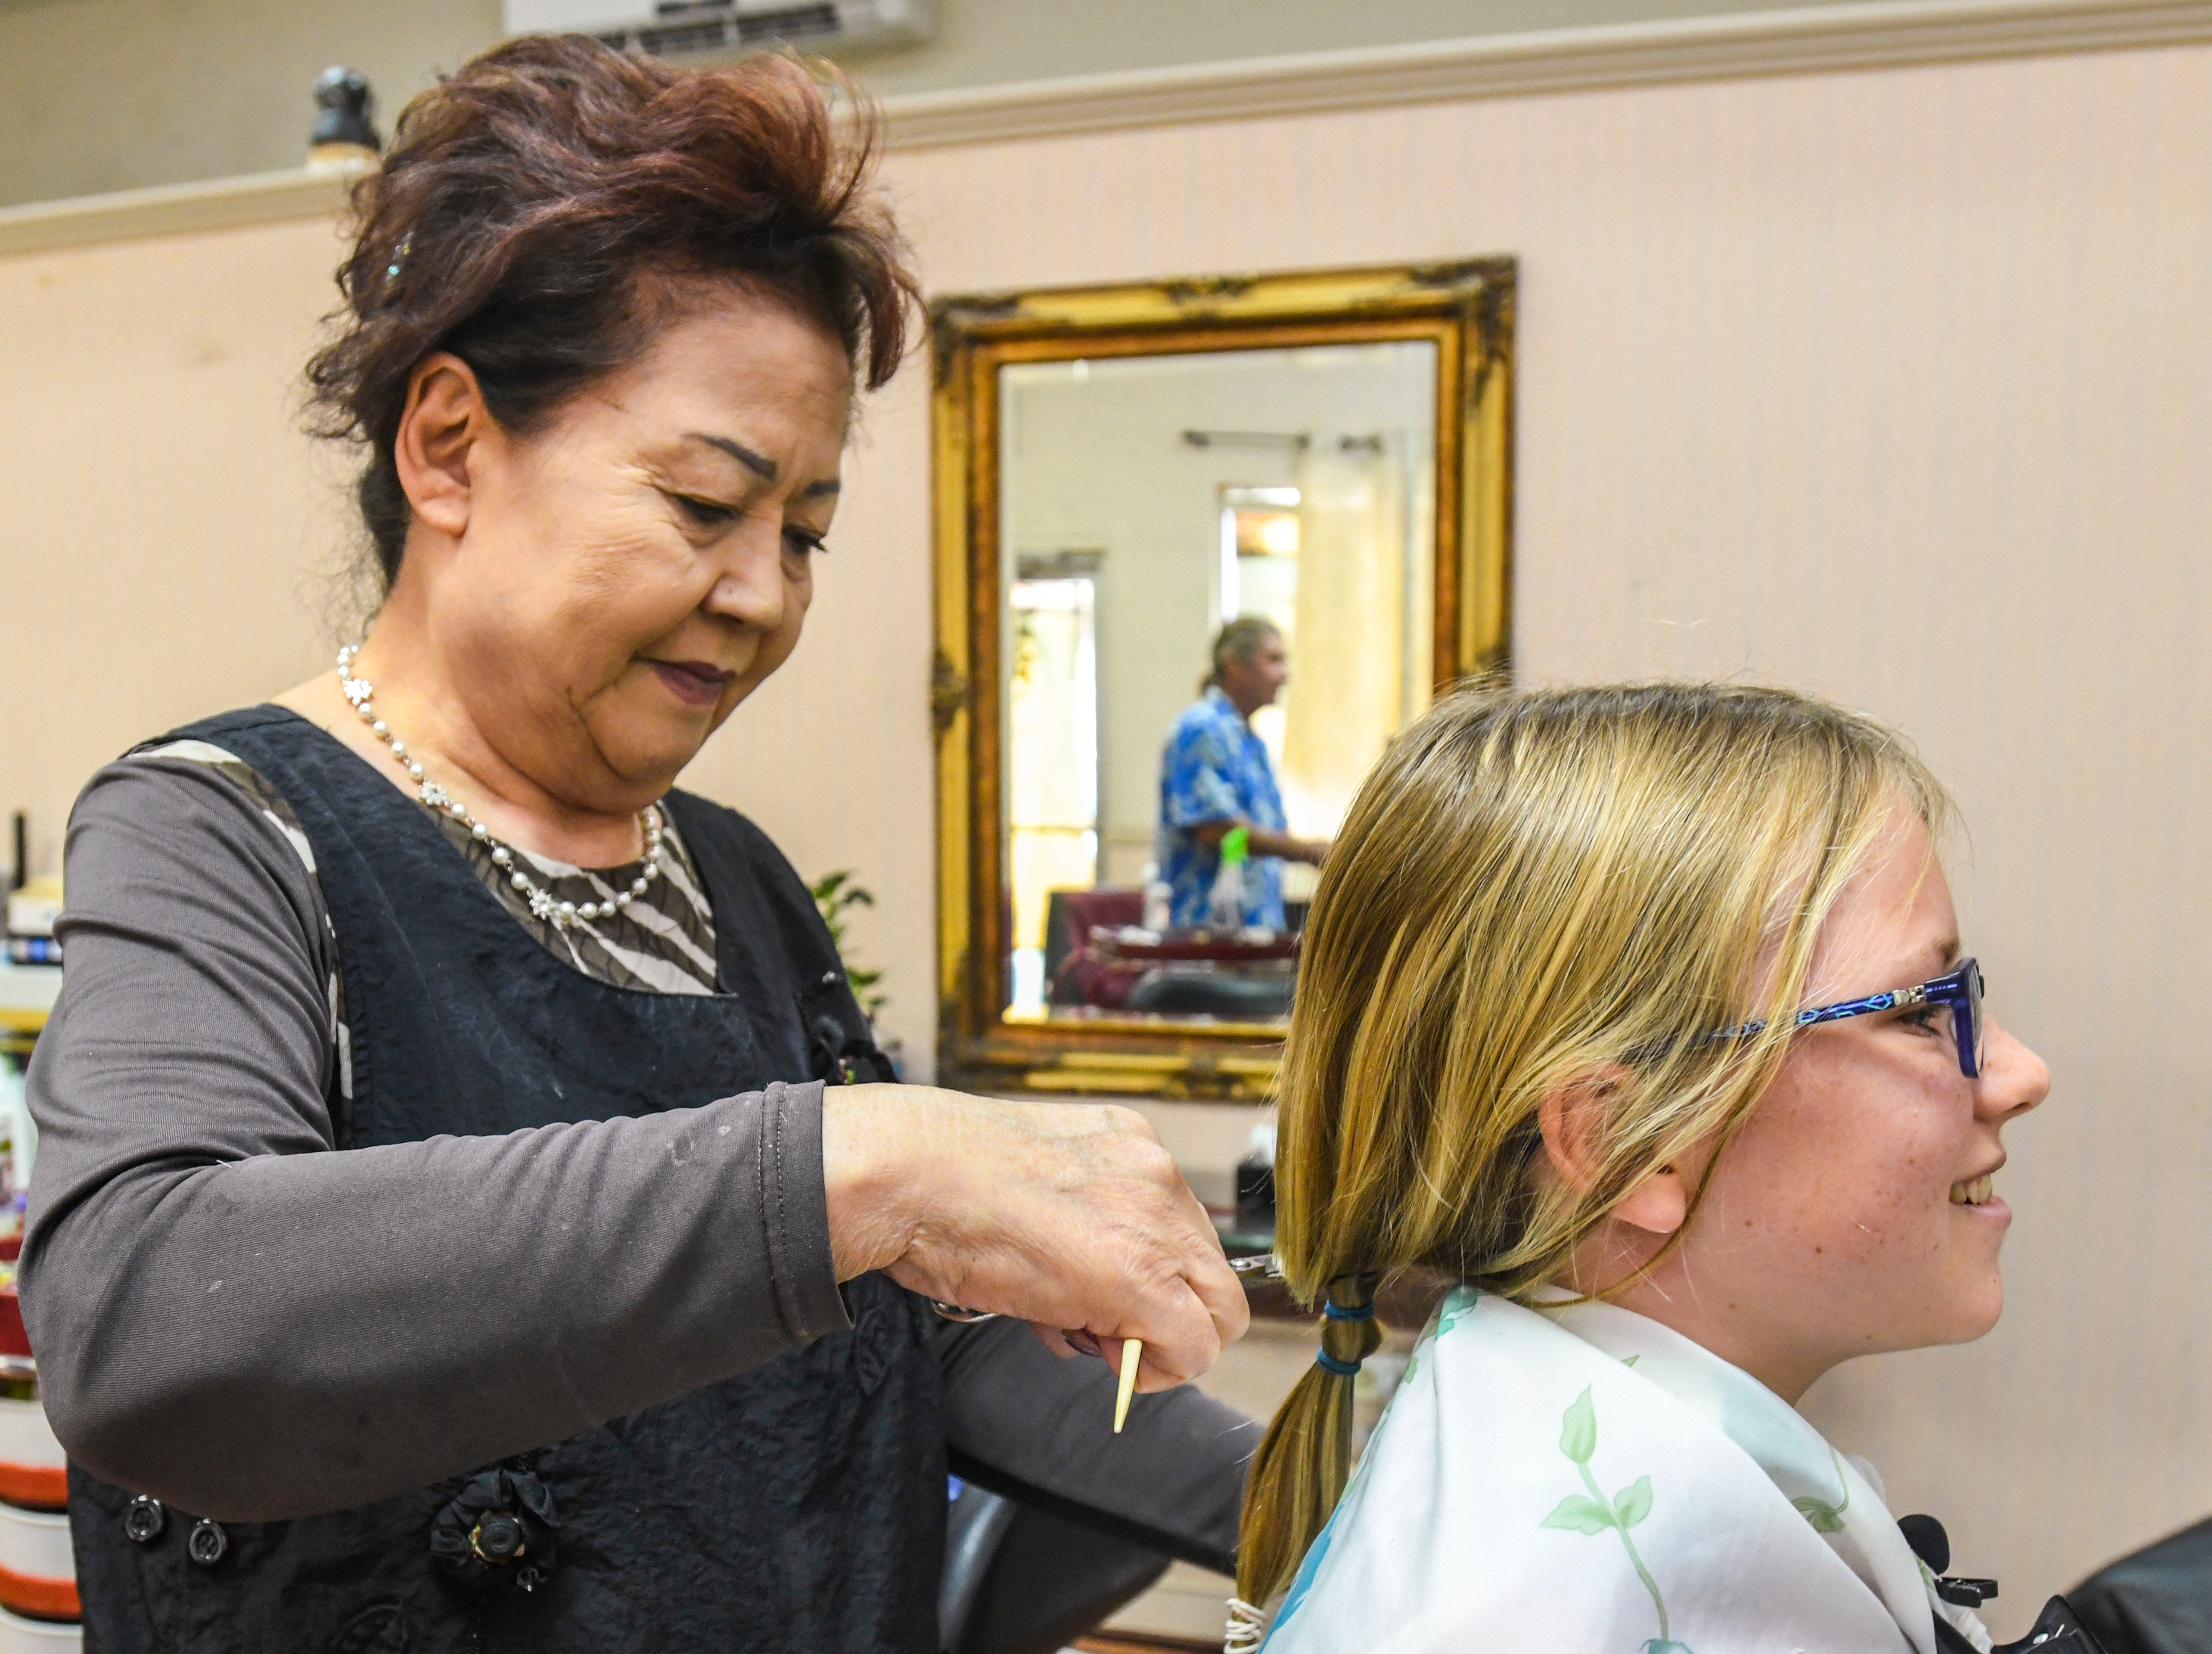 Suzzi Jung, standing, cuts a long tied length of hair from Raylene DeBenedictis, 12, at the Grace Beauty Shop in Tamuning on Wednesday, Feb. 6, 2019. DeBenedictis, and her father Shepherd both had their long hair cut, with the intention to donate their locks to Wigs for Kids and 360 Hair Inc., respectively, to be fabricated into wigs for people suffering from medical hair loss.